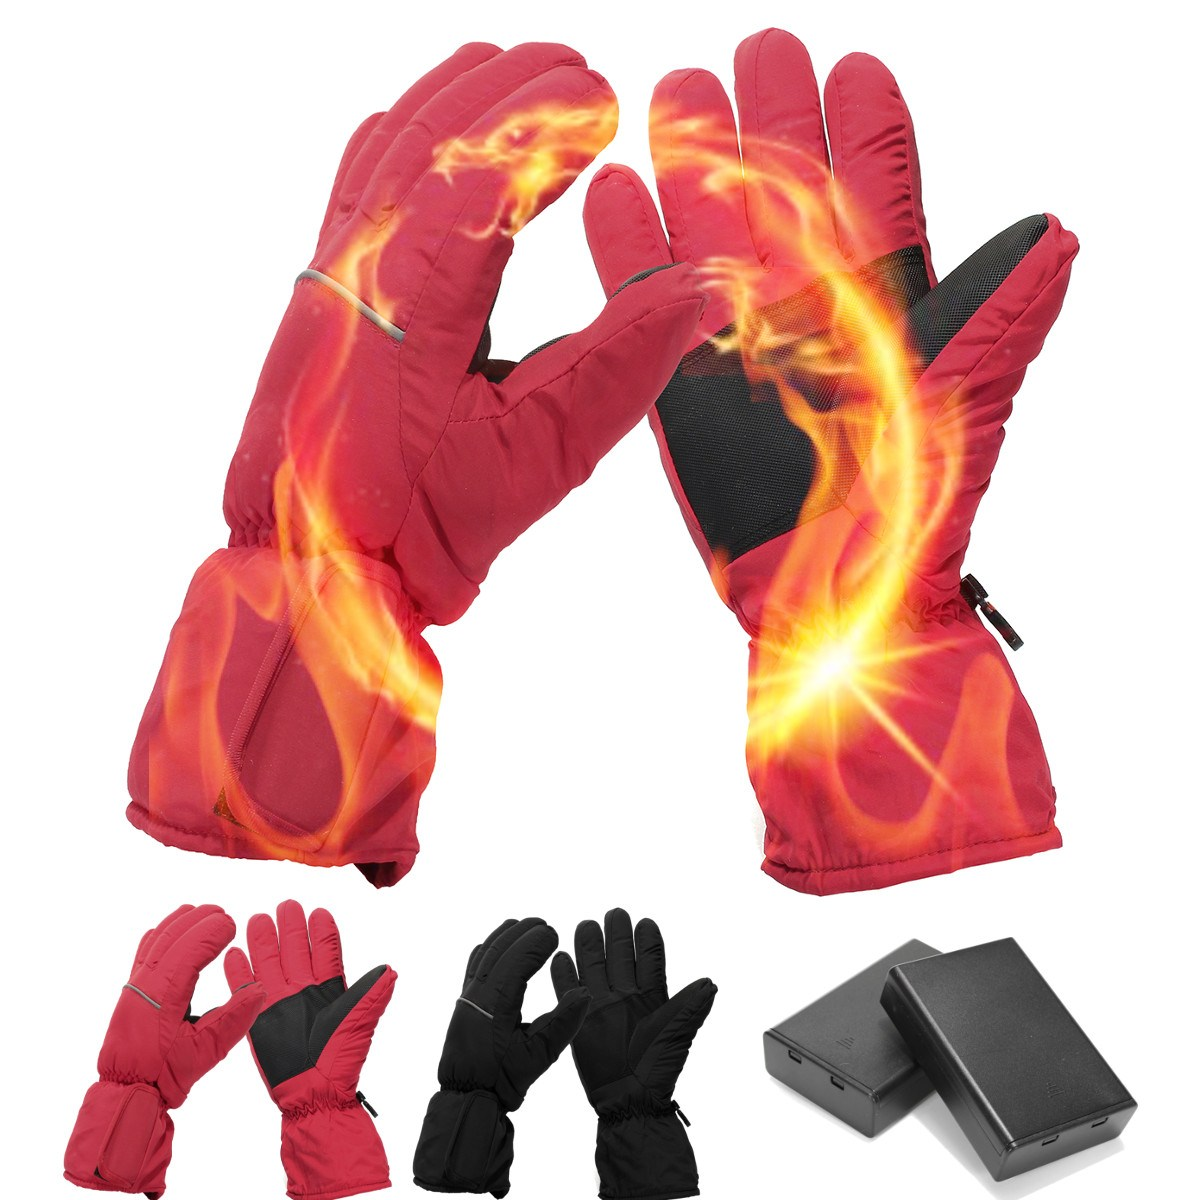 Waterproof Winter Rechargeable Motorcycle Ski Bike Heated Gloves Electric Battery Gloves Work Snow Full Finger Warmer Gloves 1 pair 4000mah rechargeable battery with smart switch on off electric heated warm glove winter outdoor work ski warmer gloves